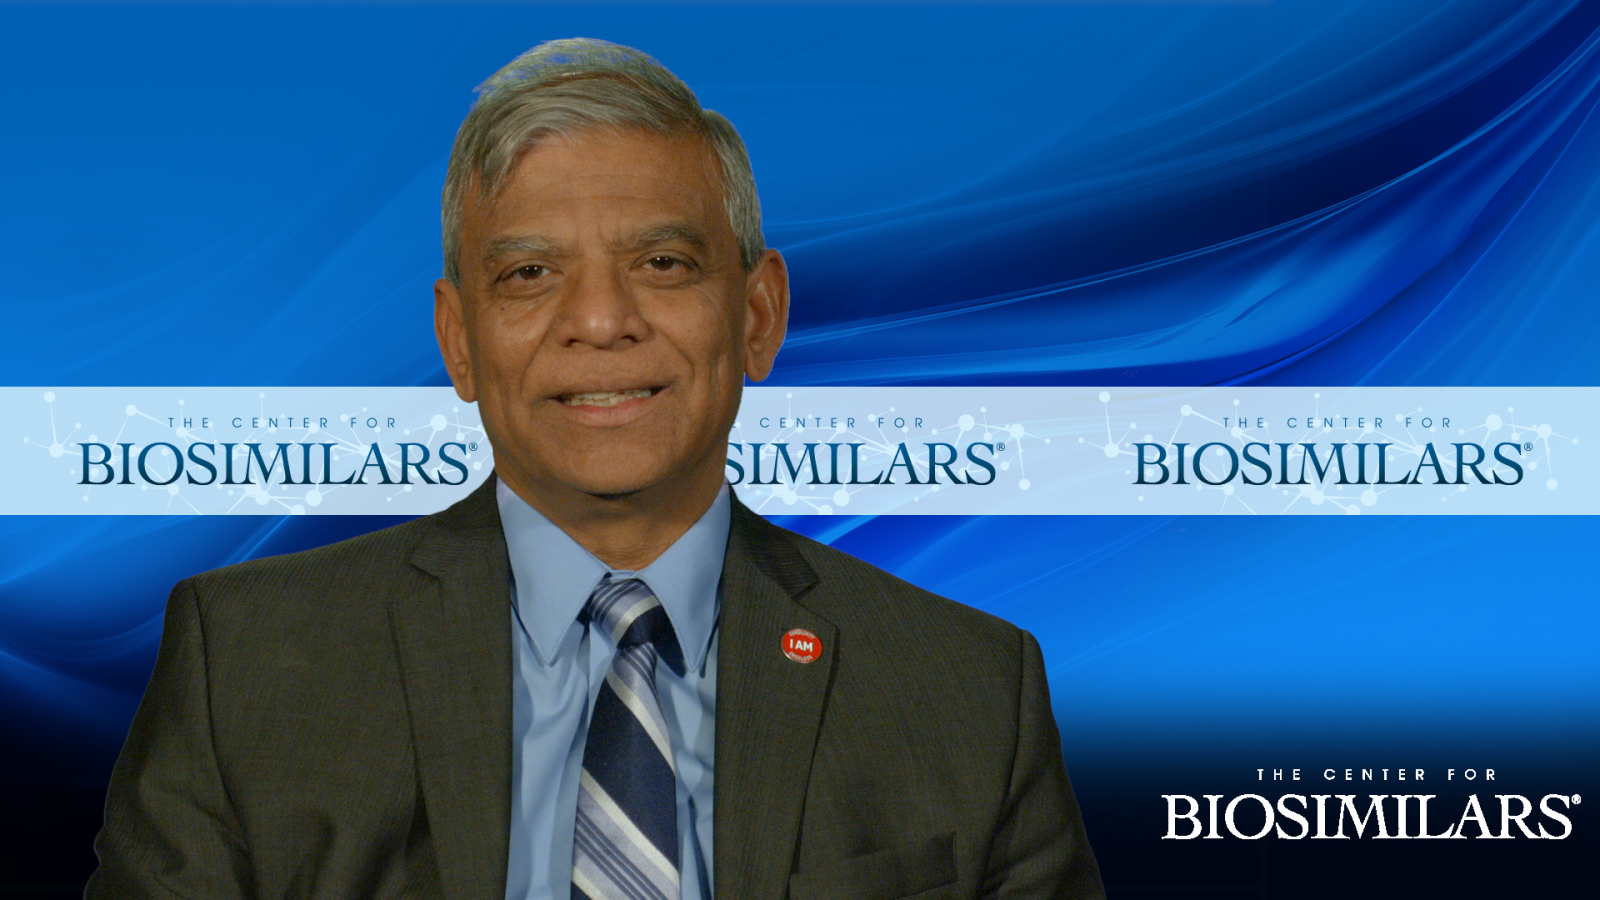 Available Oncology Biosimilars and Their Efficacy